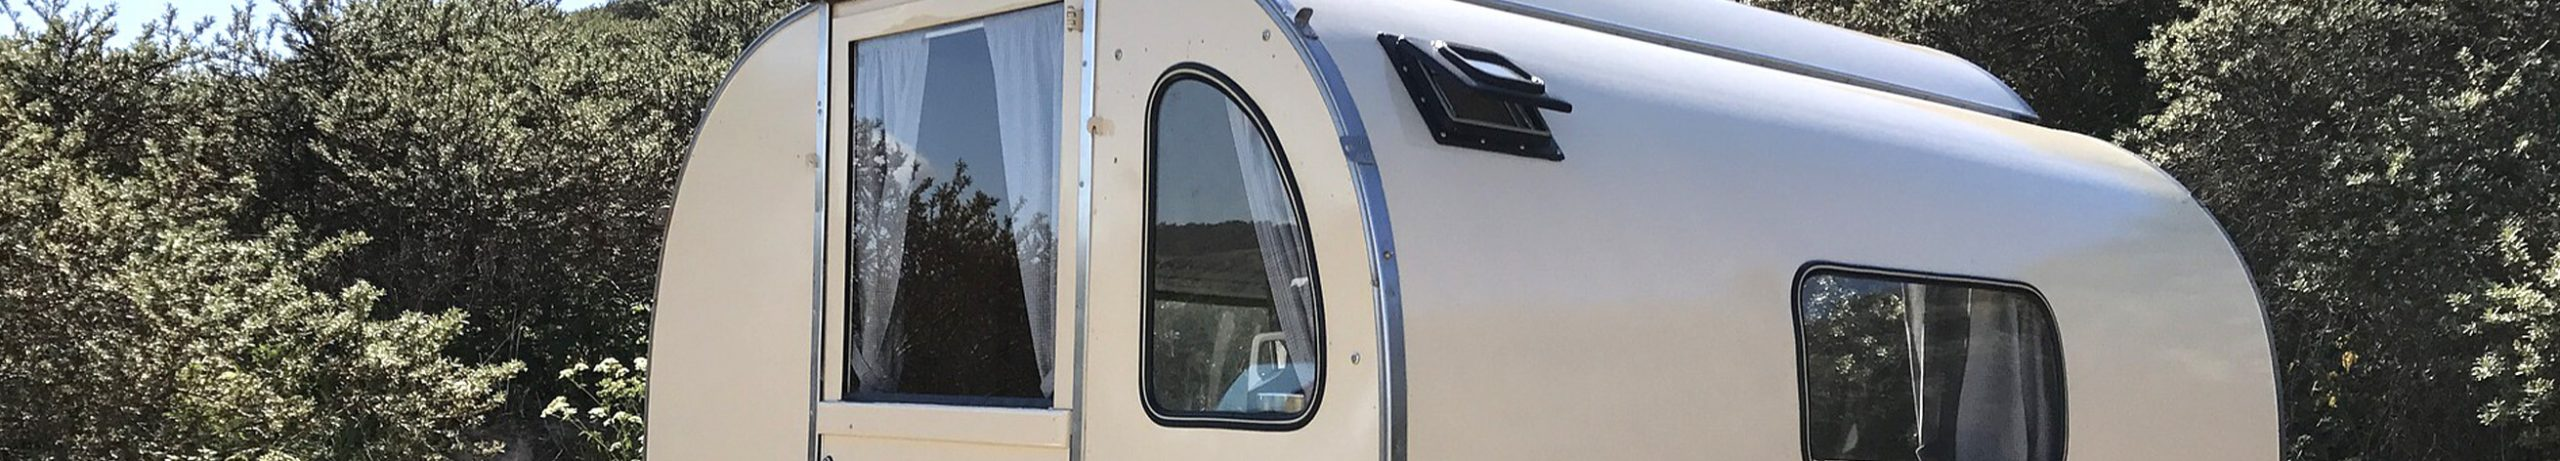 Touring Caravan Accidents Abroad